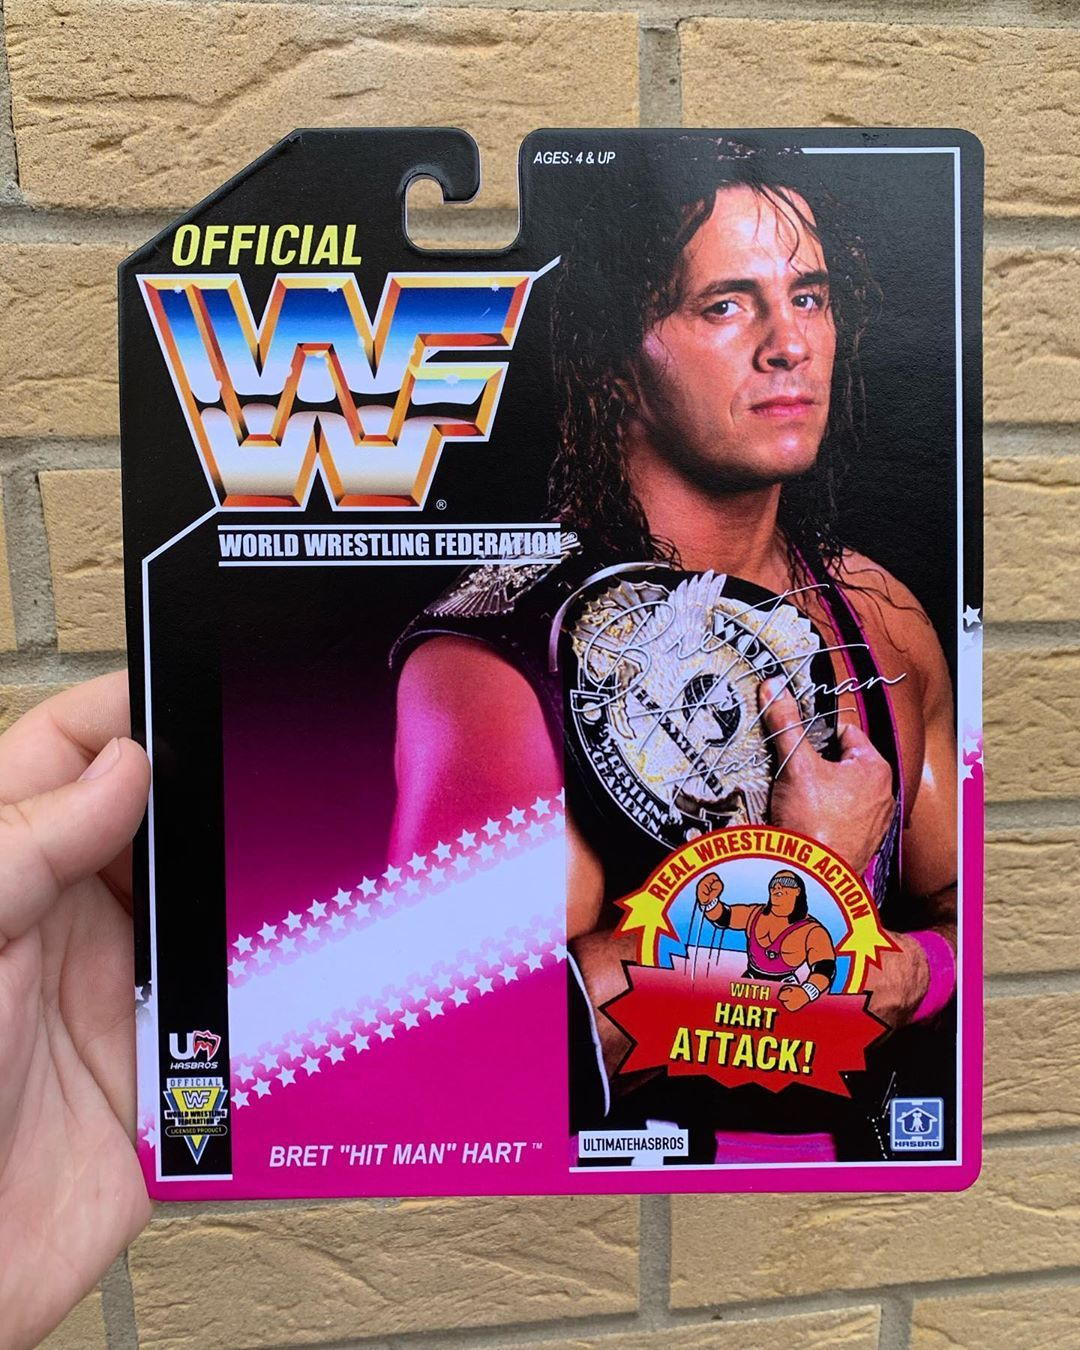 """At today's prices I don't think I'm ever going to be able to own a MOC Series 8 Bret """"Hitman"""" Hart so I decided to make my own version instead.  #wwfhasbros #wwfhasbrofigures #wwfhasbrocustoms #wwf #wrestlingfigures #wrestlemania #toys #actionfigures #wrestling #prowrestling #wwfgoldenage #wwfcustomhasbro #scratchthatfigureitch #wwfhasbro #majorwfpodcast #wrestlingcustom #brethart #brethitmanhart💗 #bestthereisbesttherewasbestthereeverwillbe #hitman #calgary #montrealscrewjob #champion #goat #ww"""